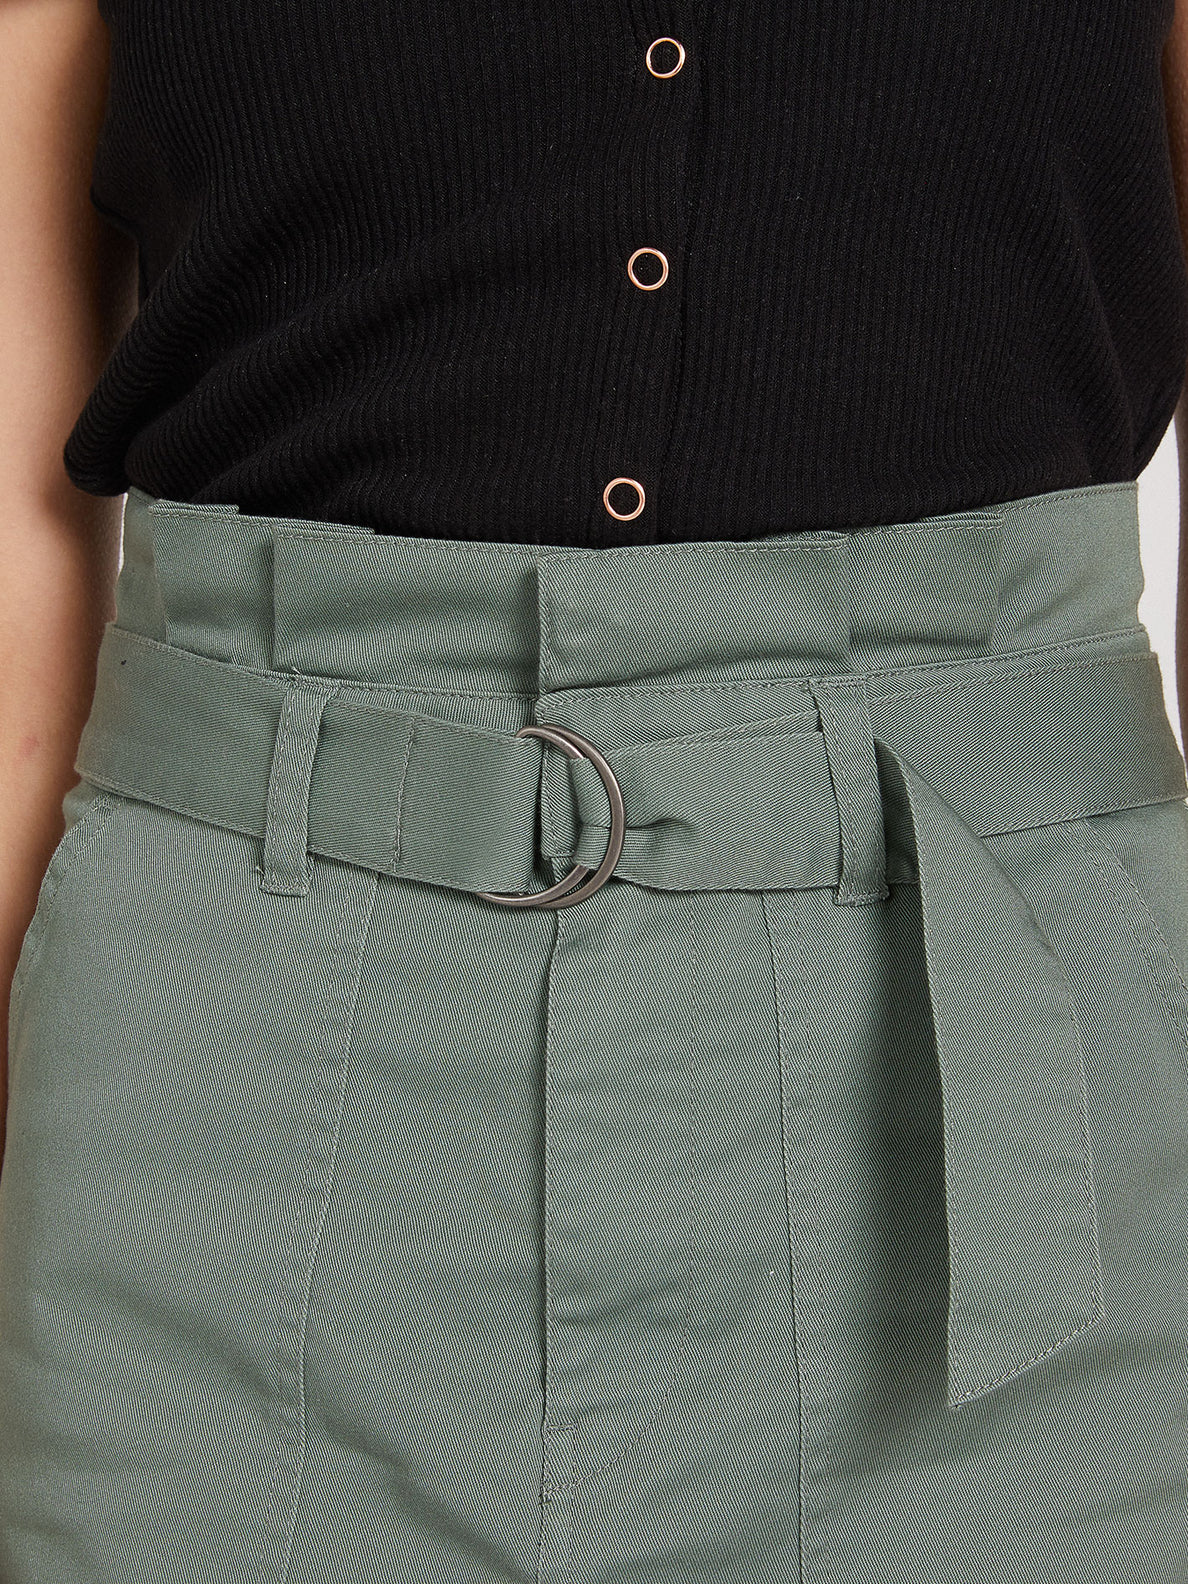 Frochickie Skirt - Forest Green (B1412000_FGR) [51]